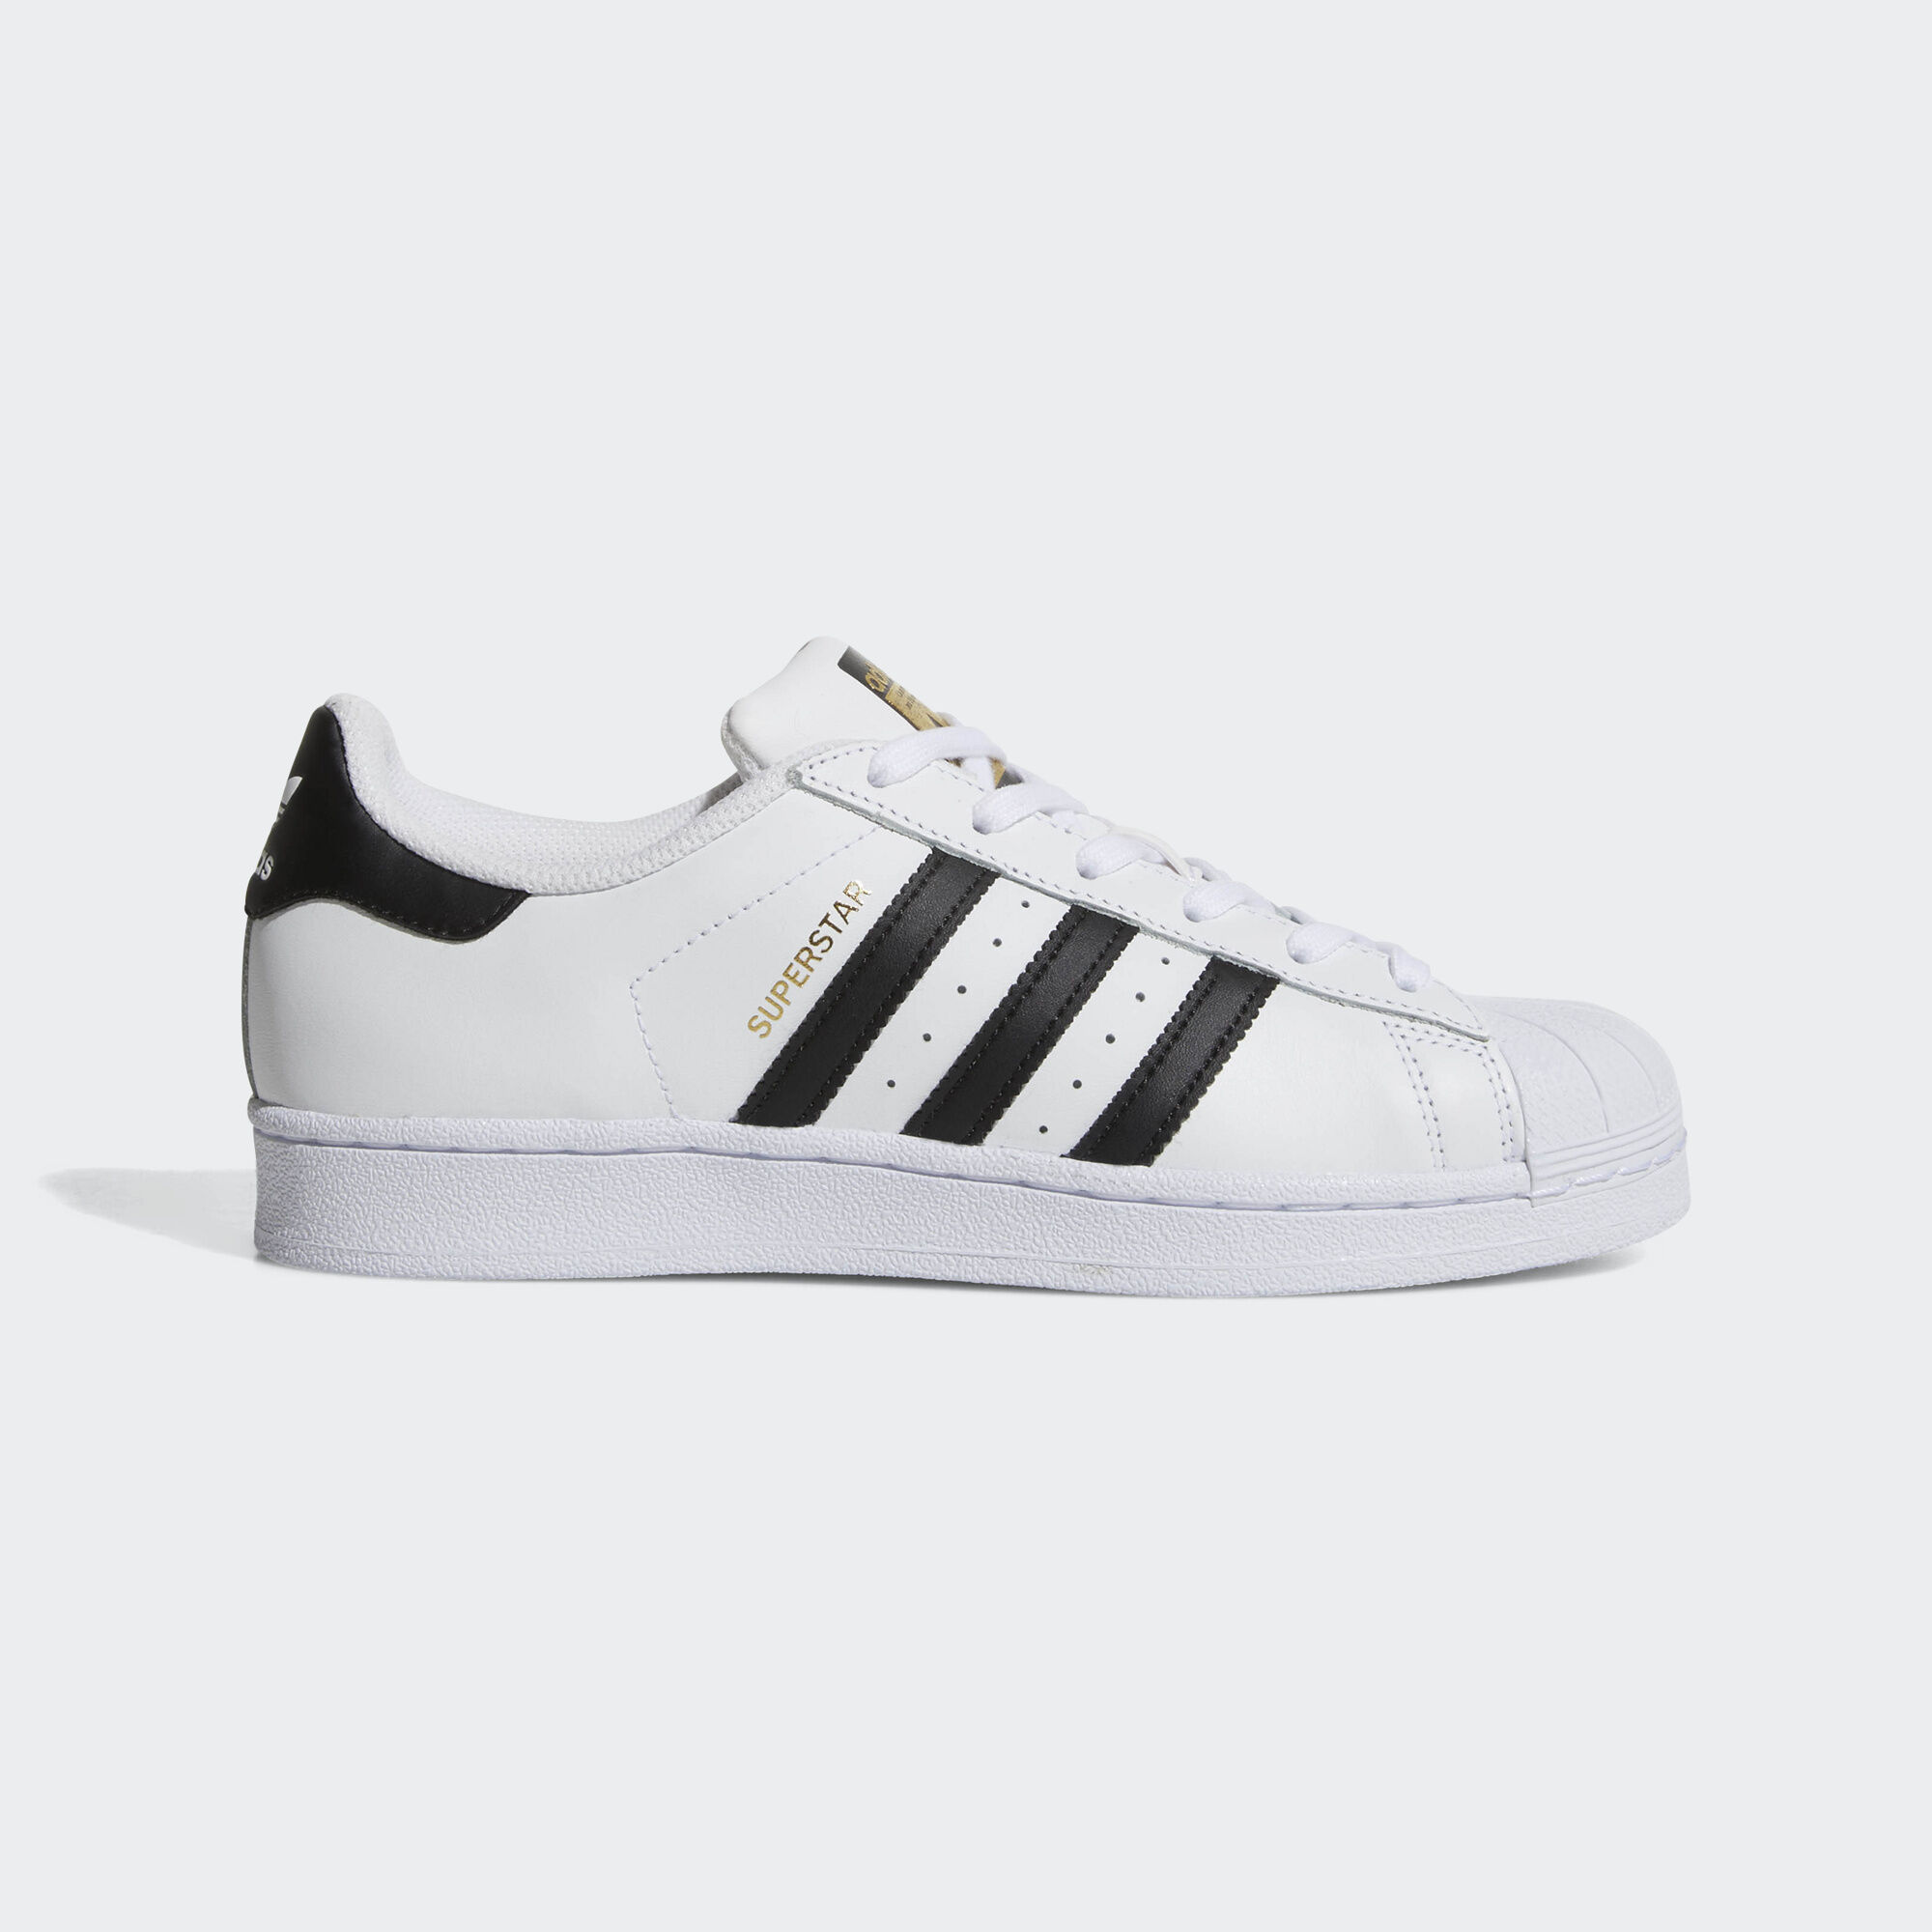 adidas superstar store near me